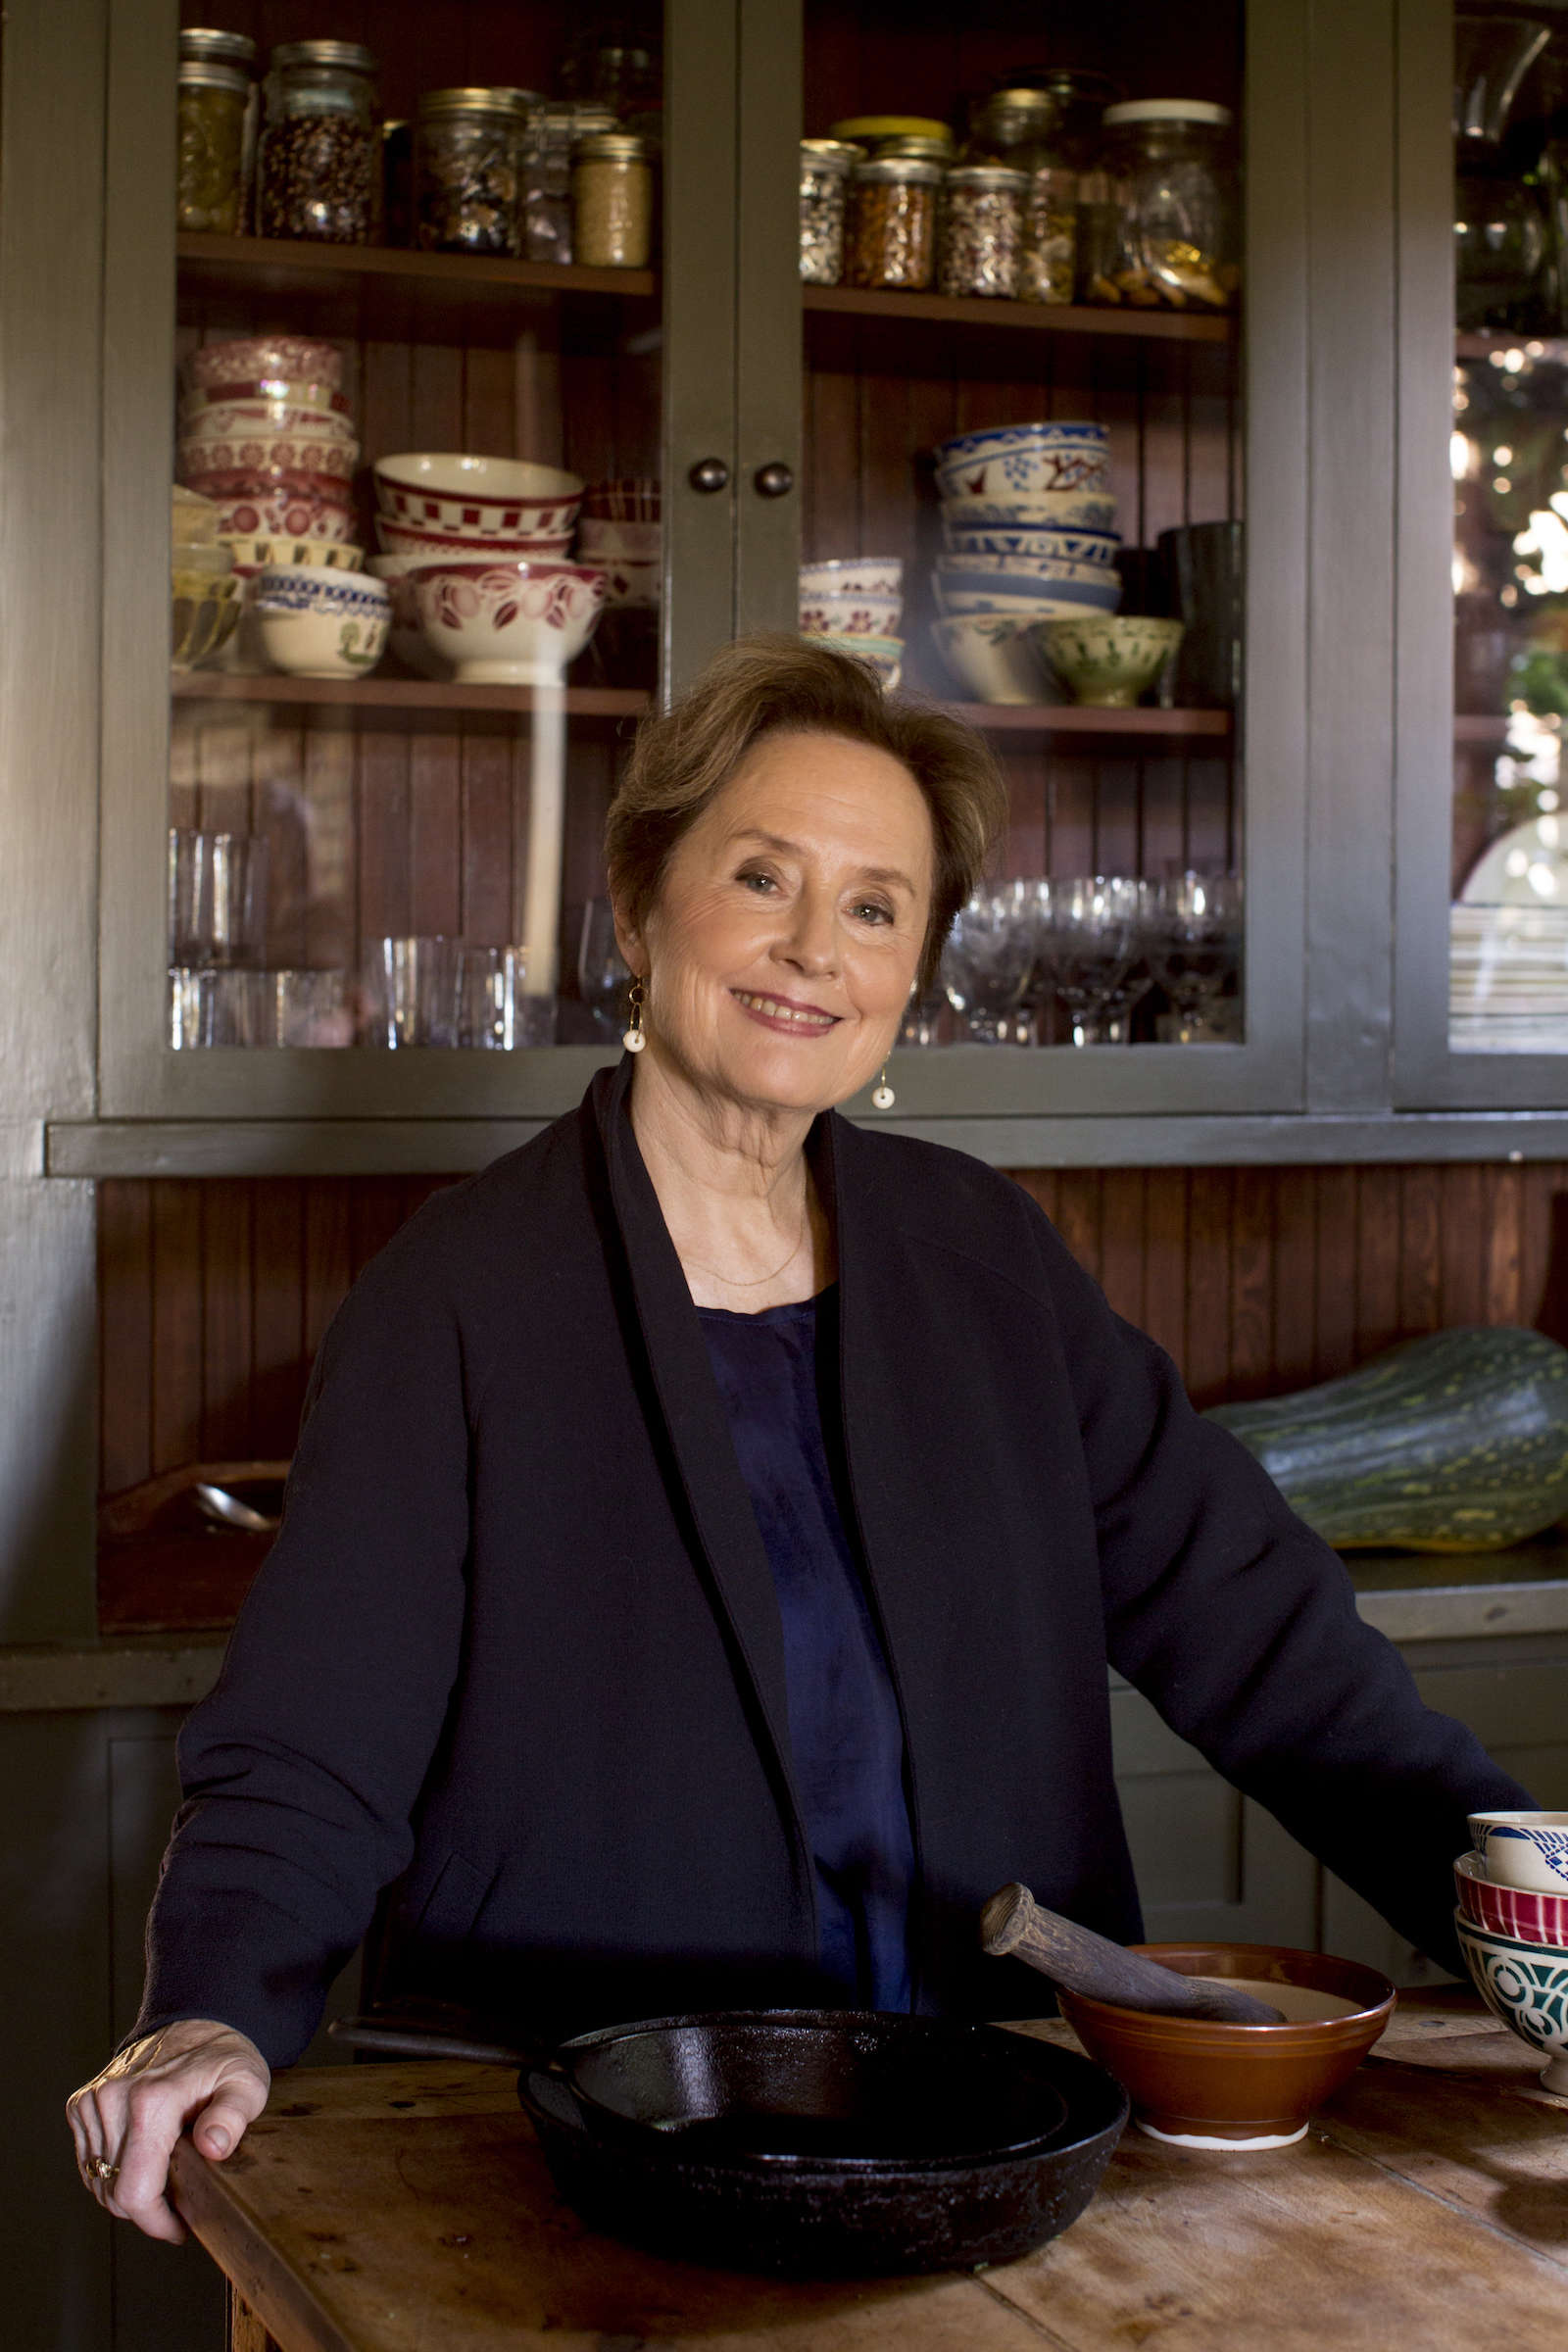 A Berkeley Kitchen Tour with Alice Waters and Fanny Singer